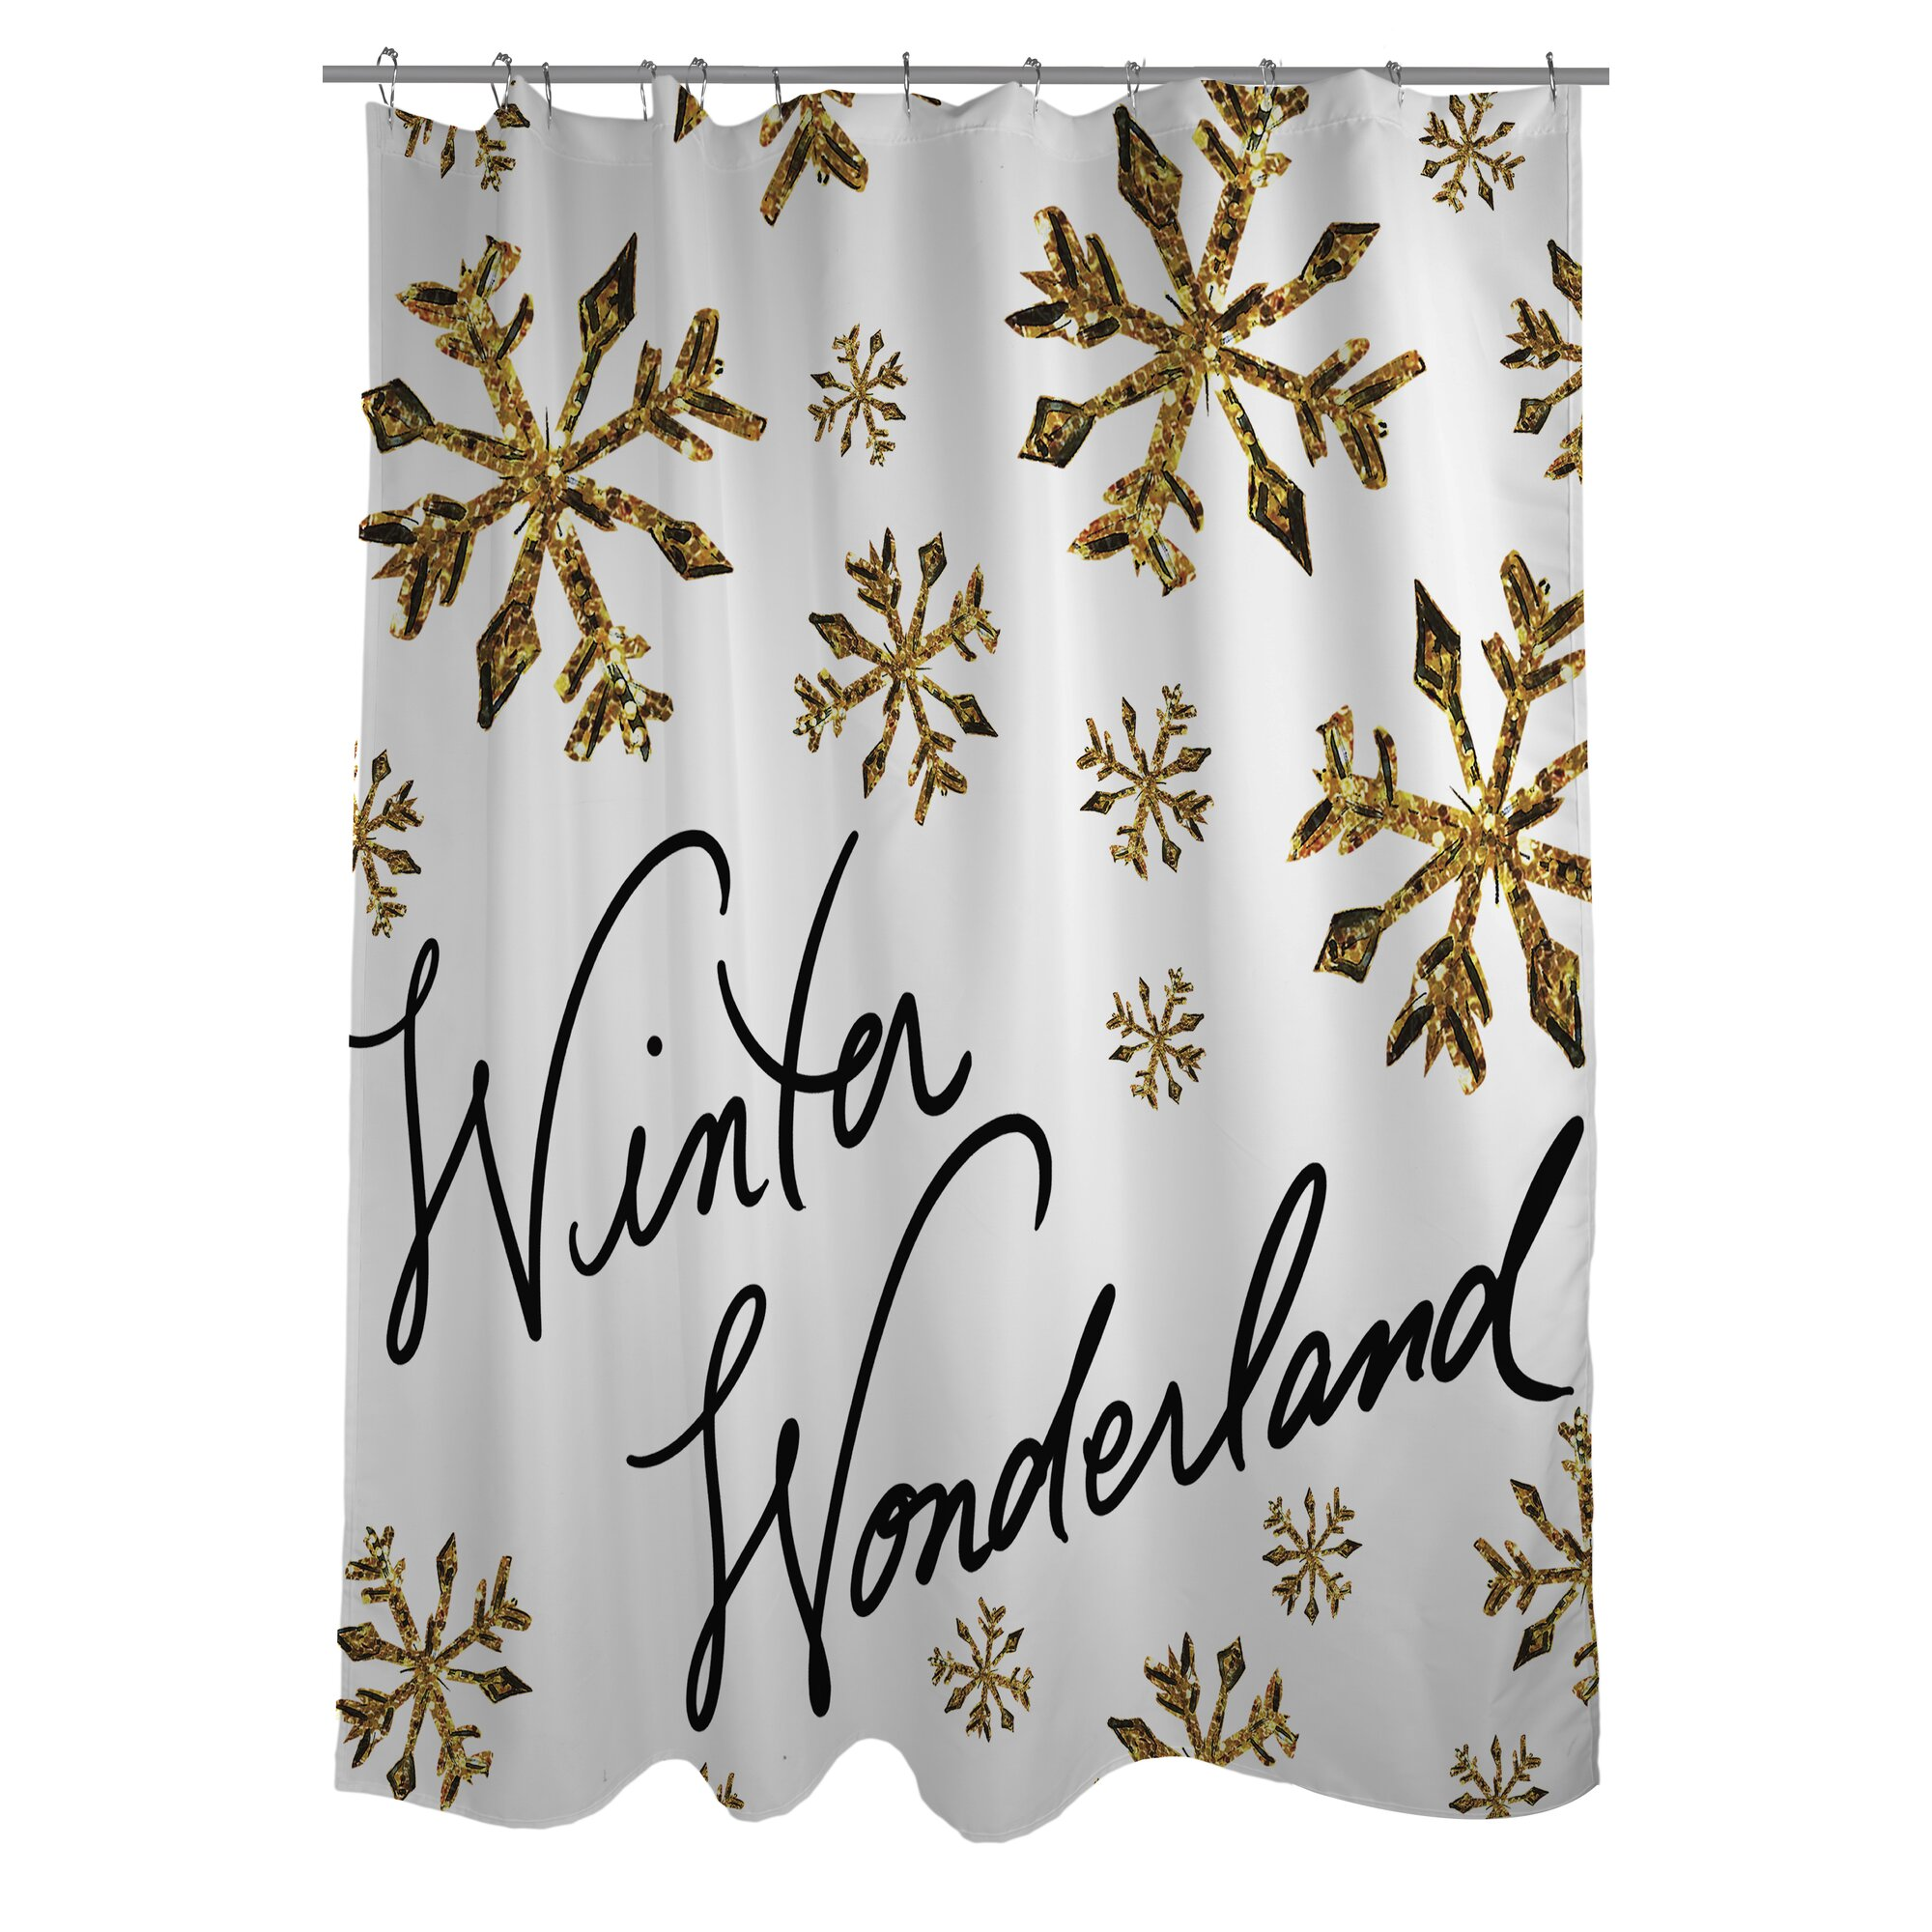 California King Size Bedroom Sets One Bella Casa Winter Wonderland Snowflakes Shower Curtain